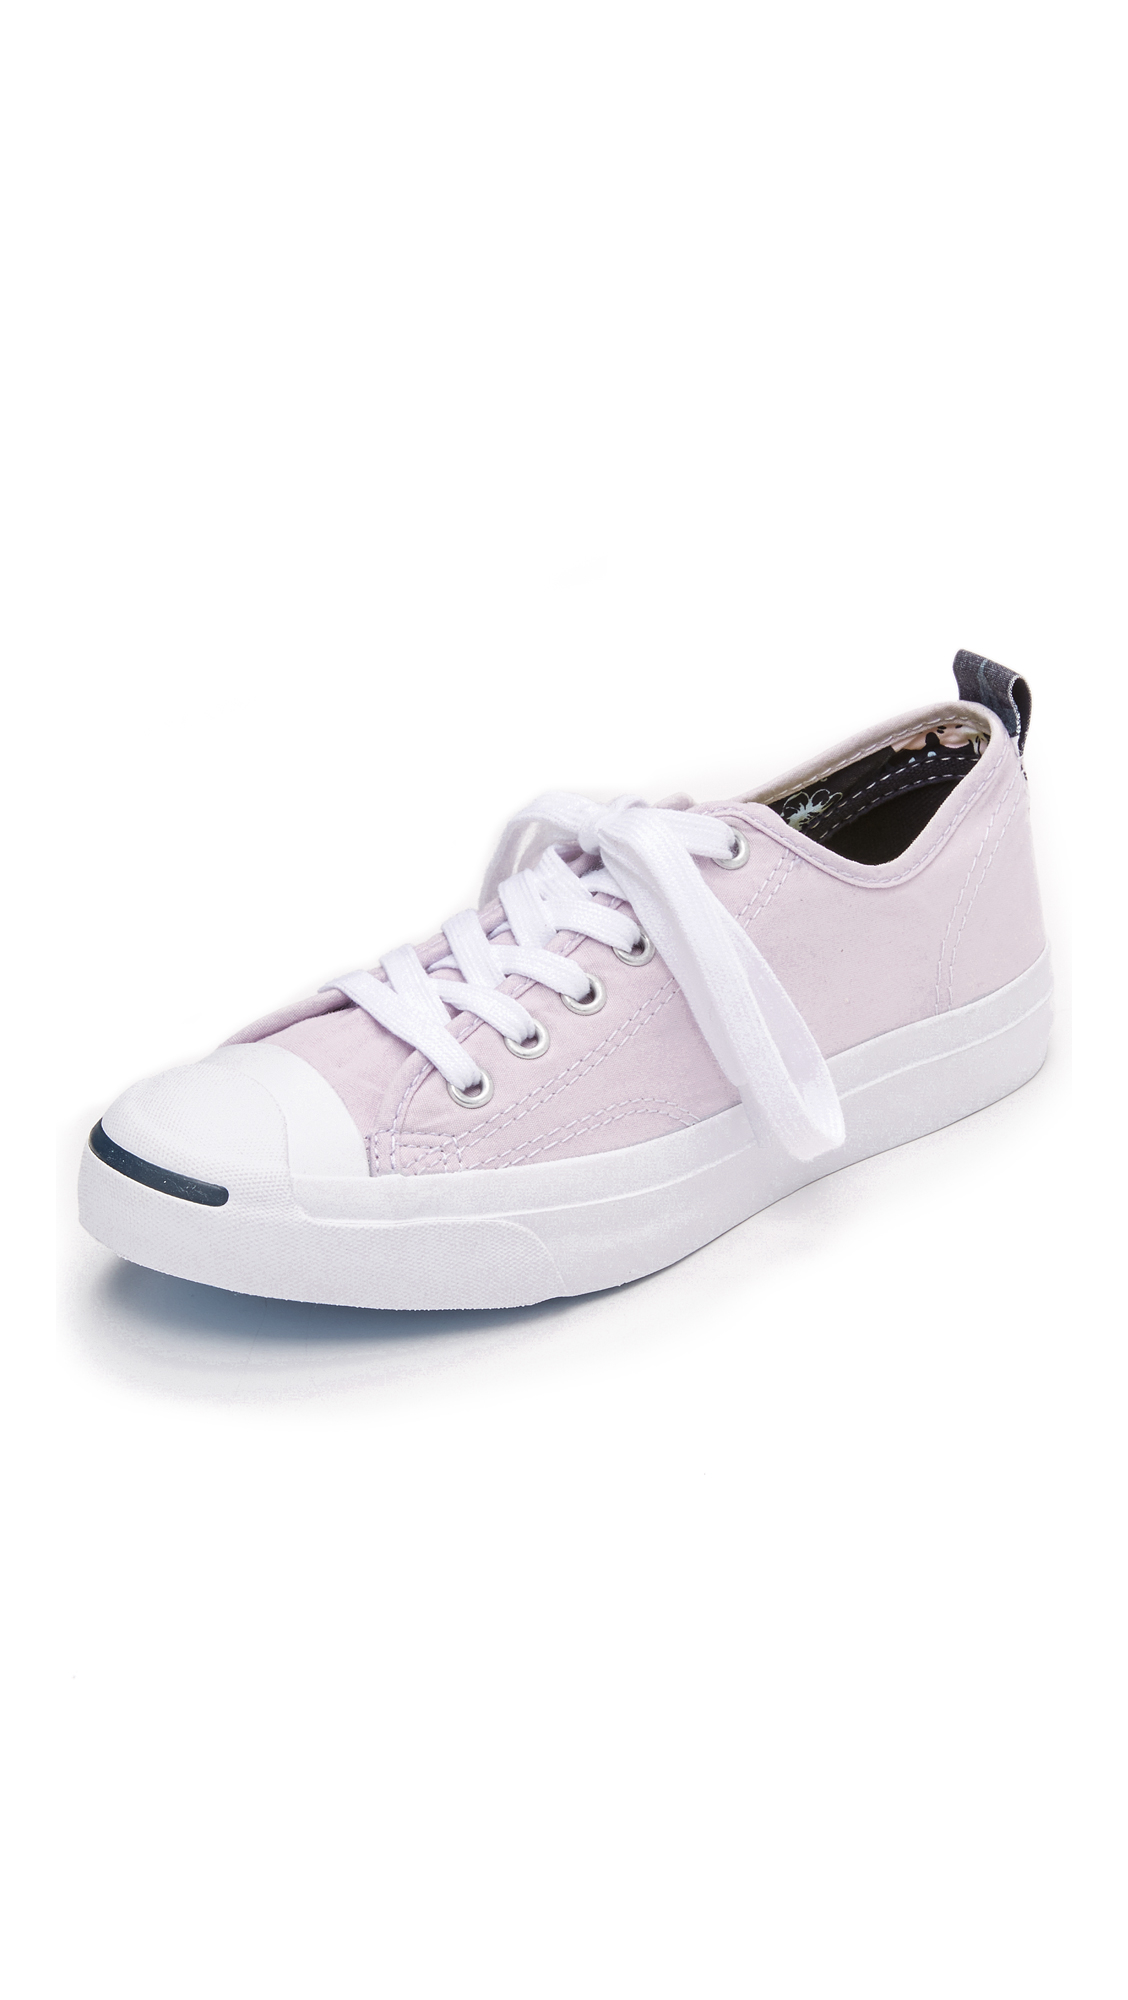 d67aaf857285e8 Lyst - Converse Jack Purcell Jack Hawaiian Twill Sneakers in Pink